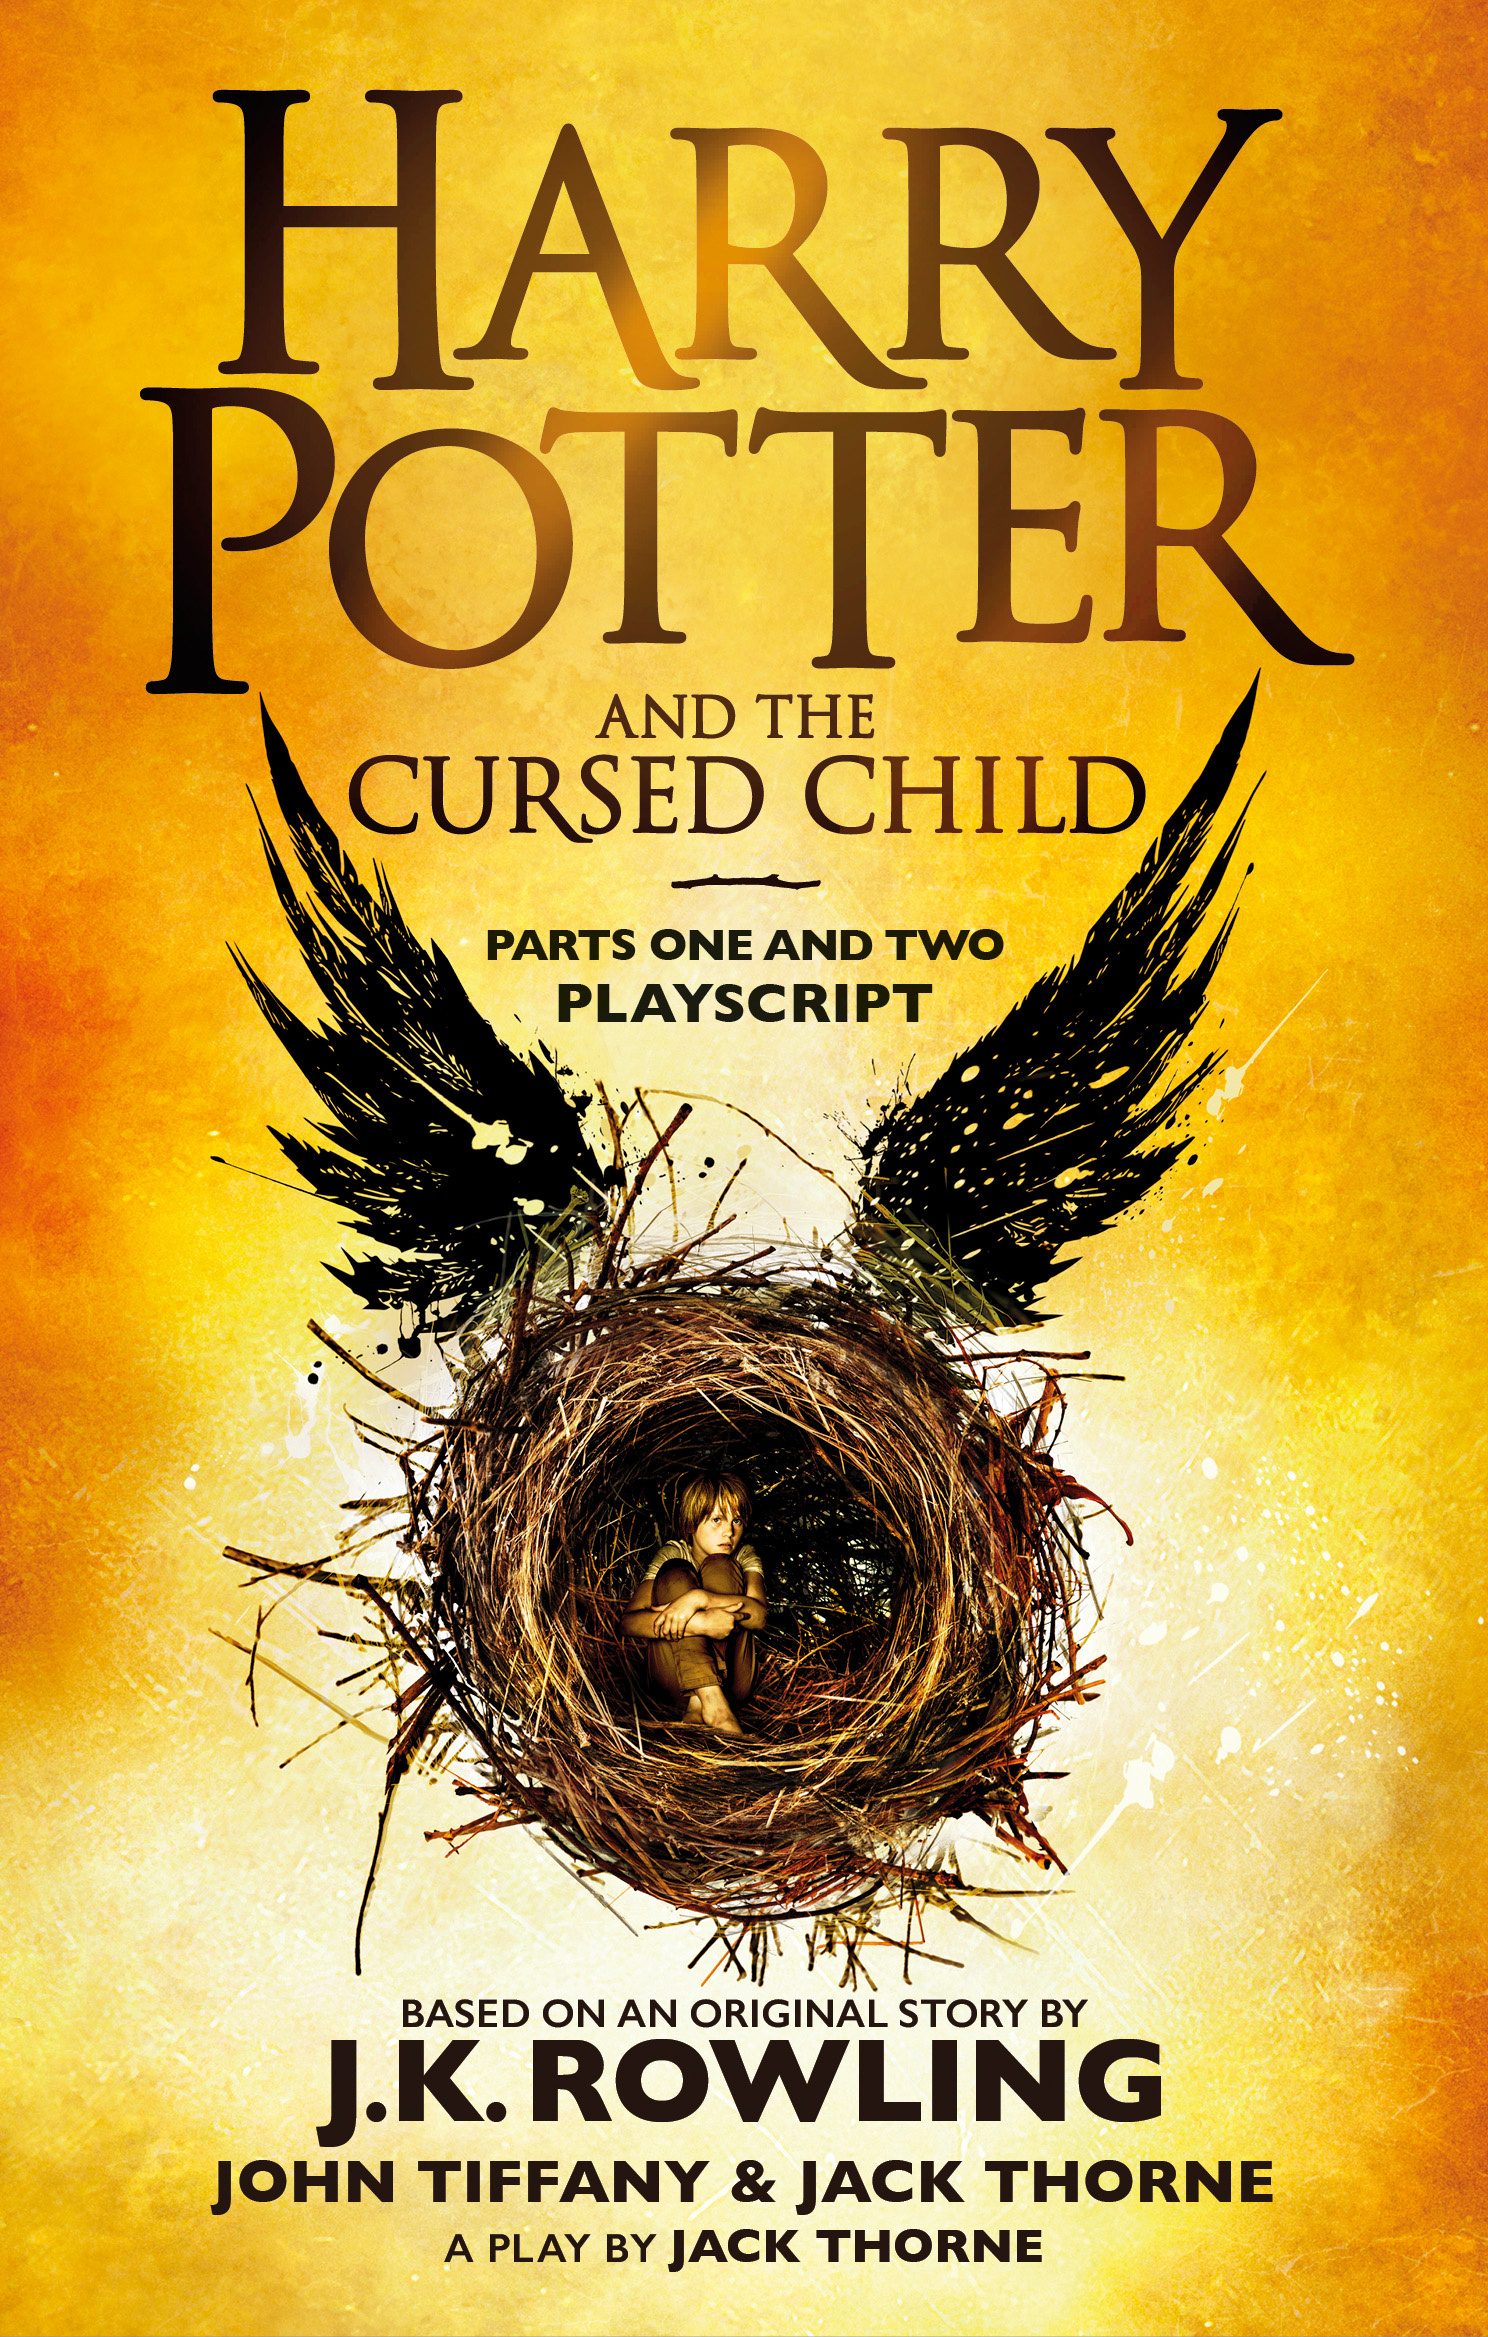 Harry Potter and the Cursed Child - Parts One and Two (Special Rehearsal Edition)The Official Script Book of the Original West E...